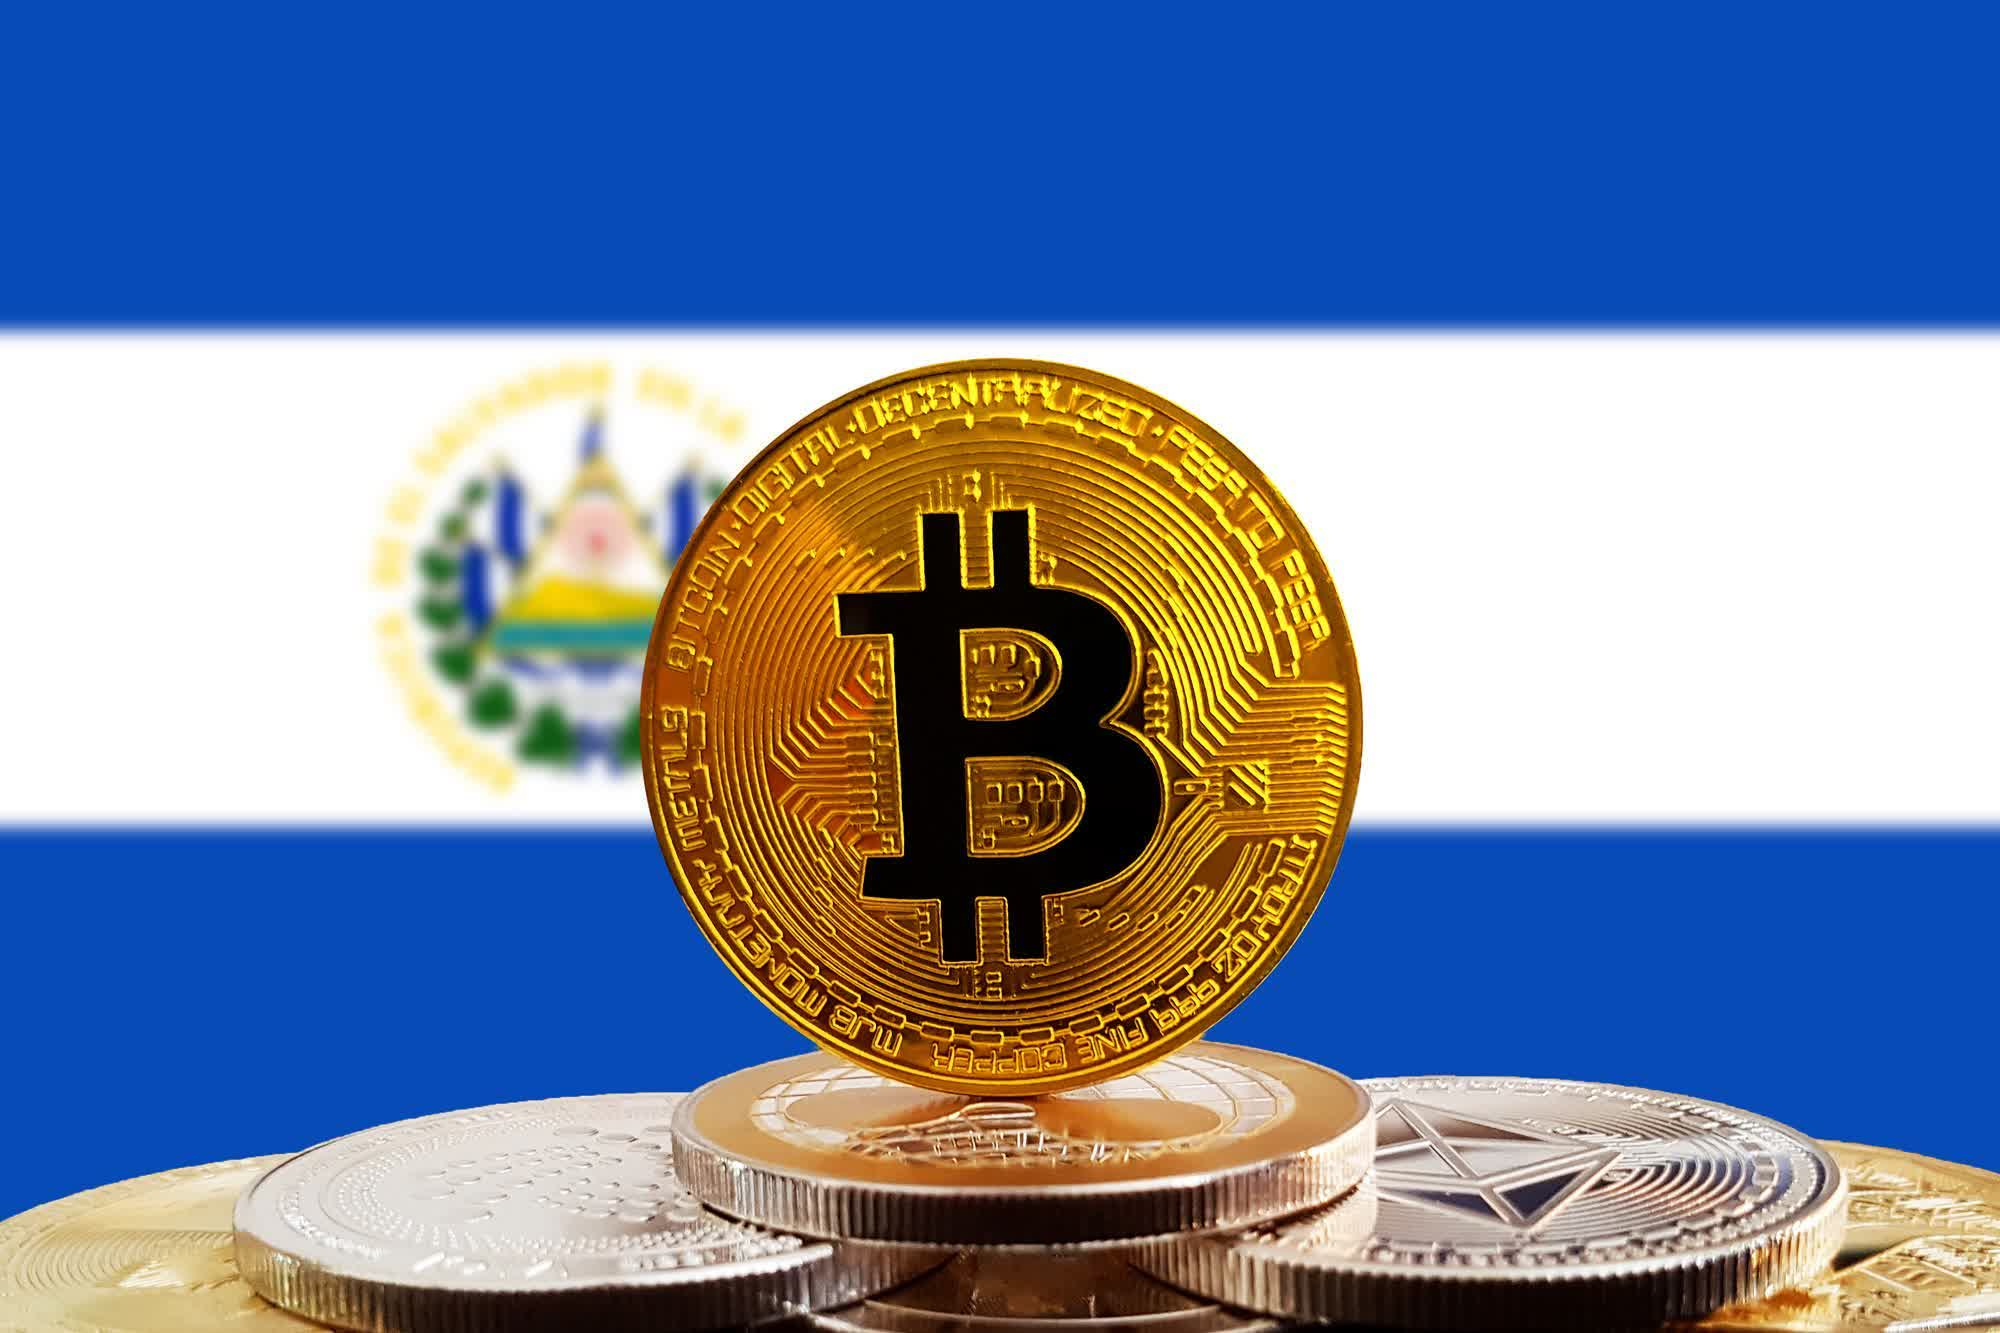 The World Bank refuses to help El Salvador's Bitcoin implementation